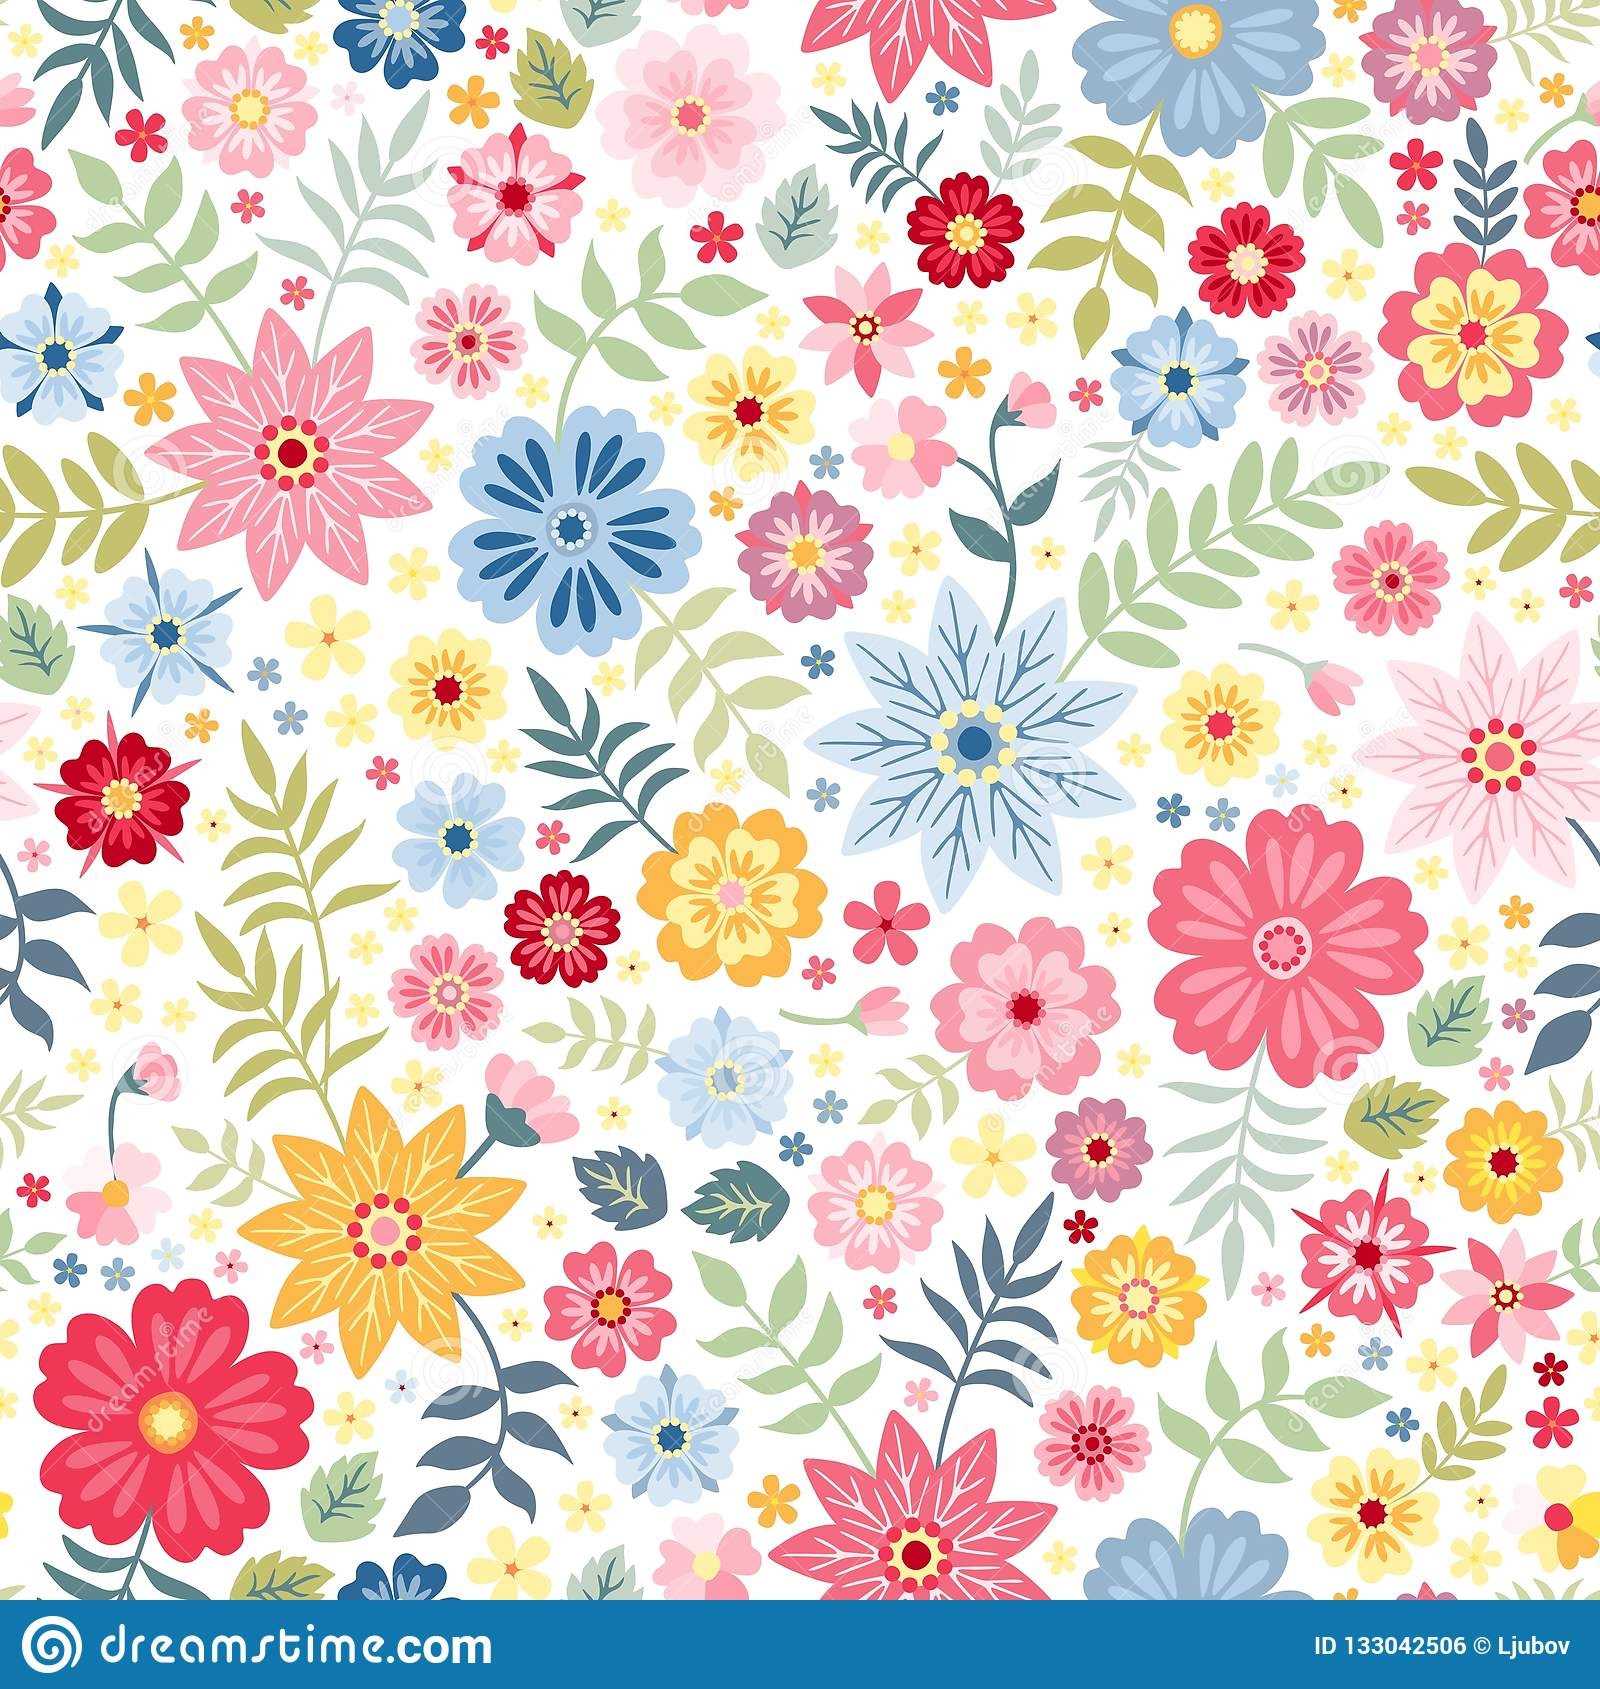 Seamless ditsy floral pattern with cute little flowers on white background. Vector illustration.